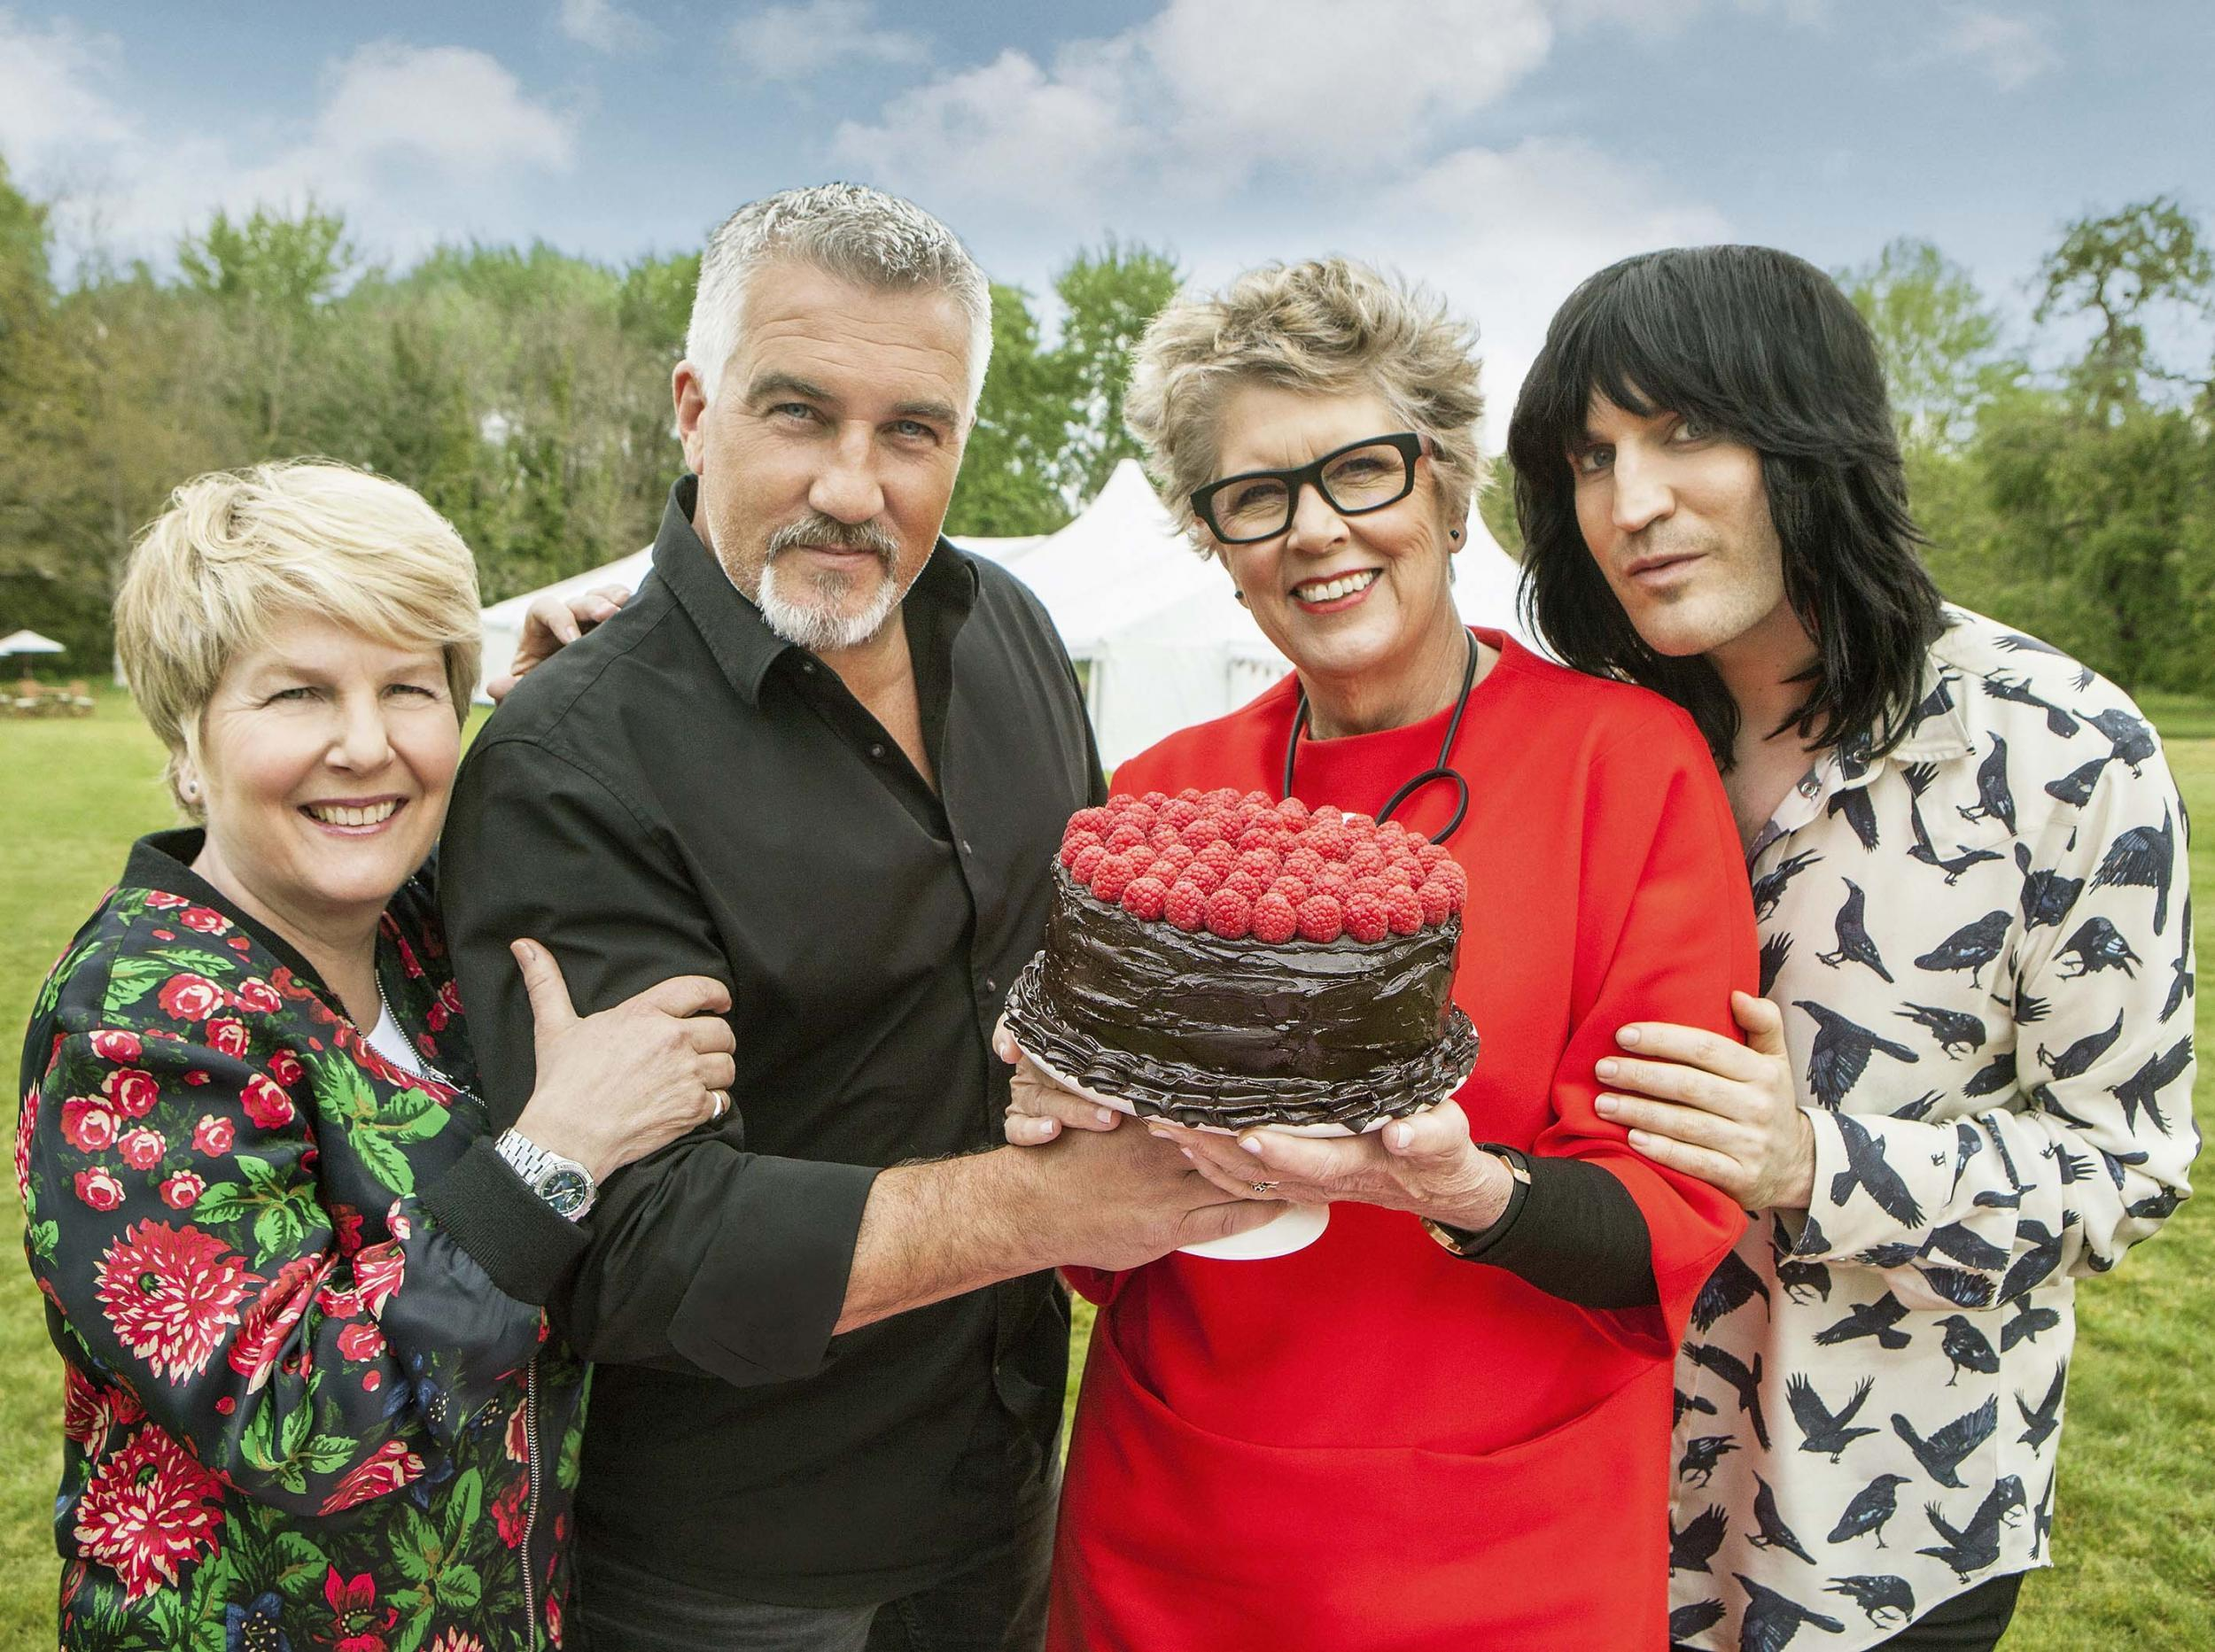 Great British Bake Off final review: No big surprises but an emotional end to a winning series